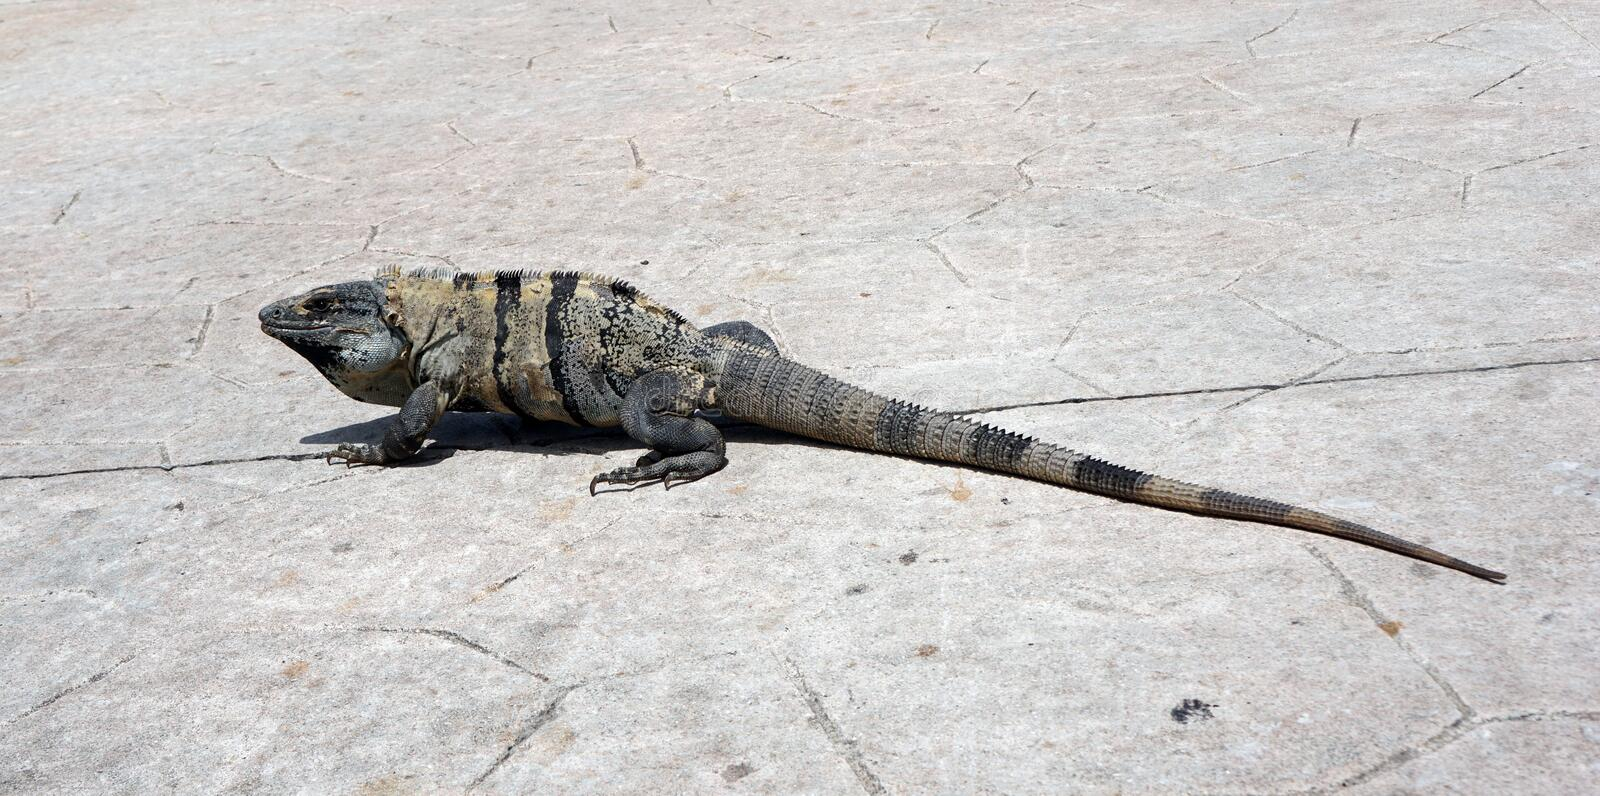 Big iguana over a road. Big adult iguana walking over a stone road, adult reptile changing his skin, wild animal in the mexican caribbean taking a sun bath, skin royalty free stock photo